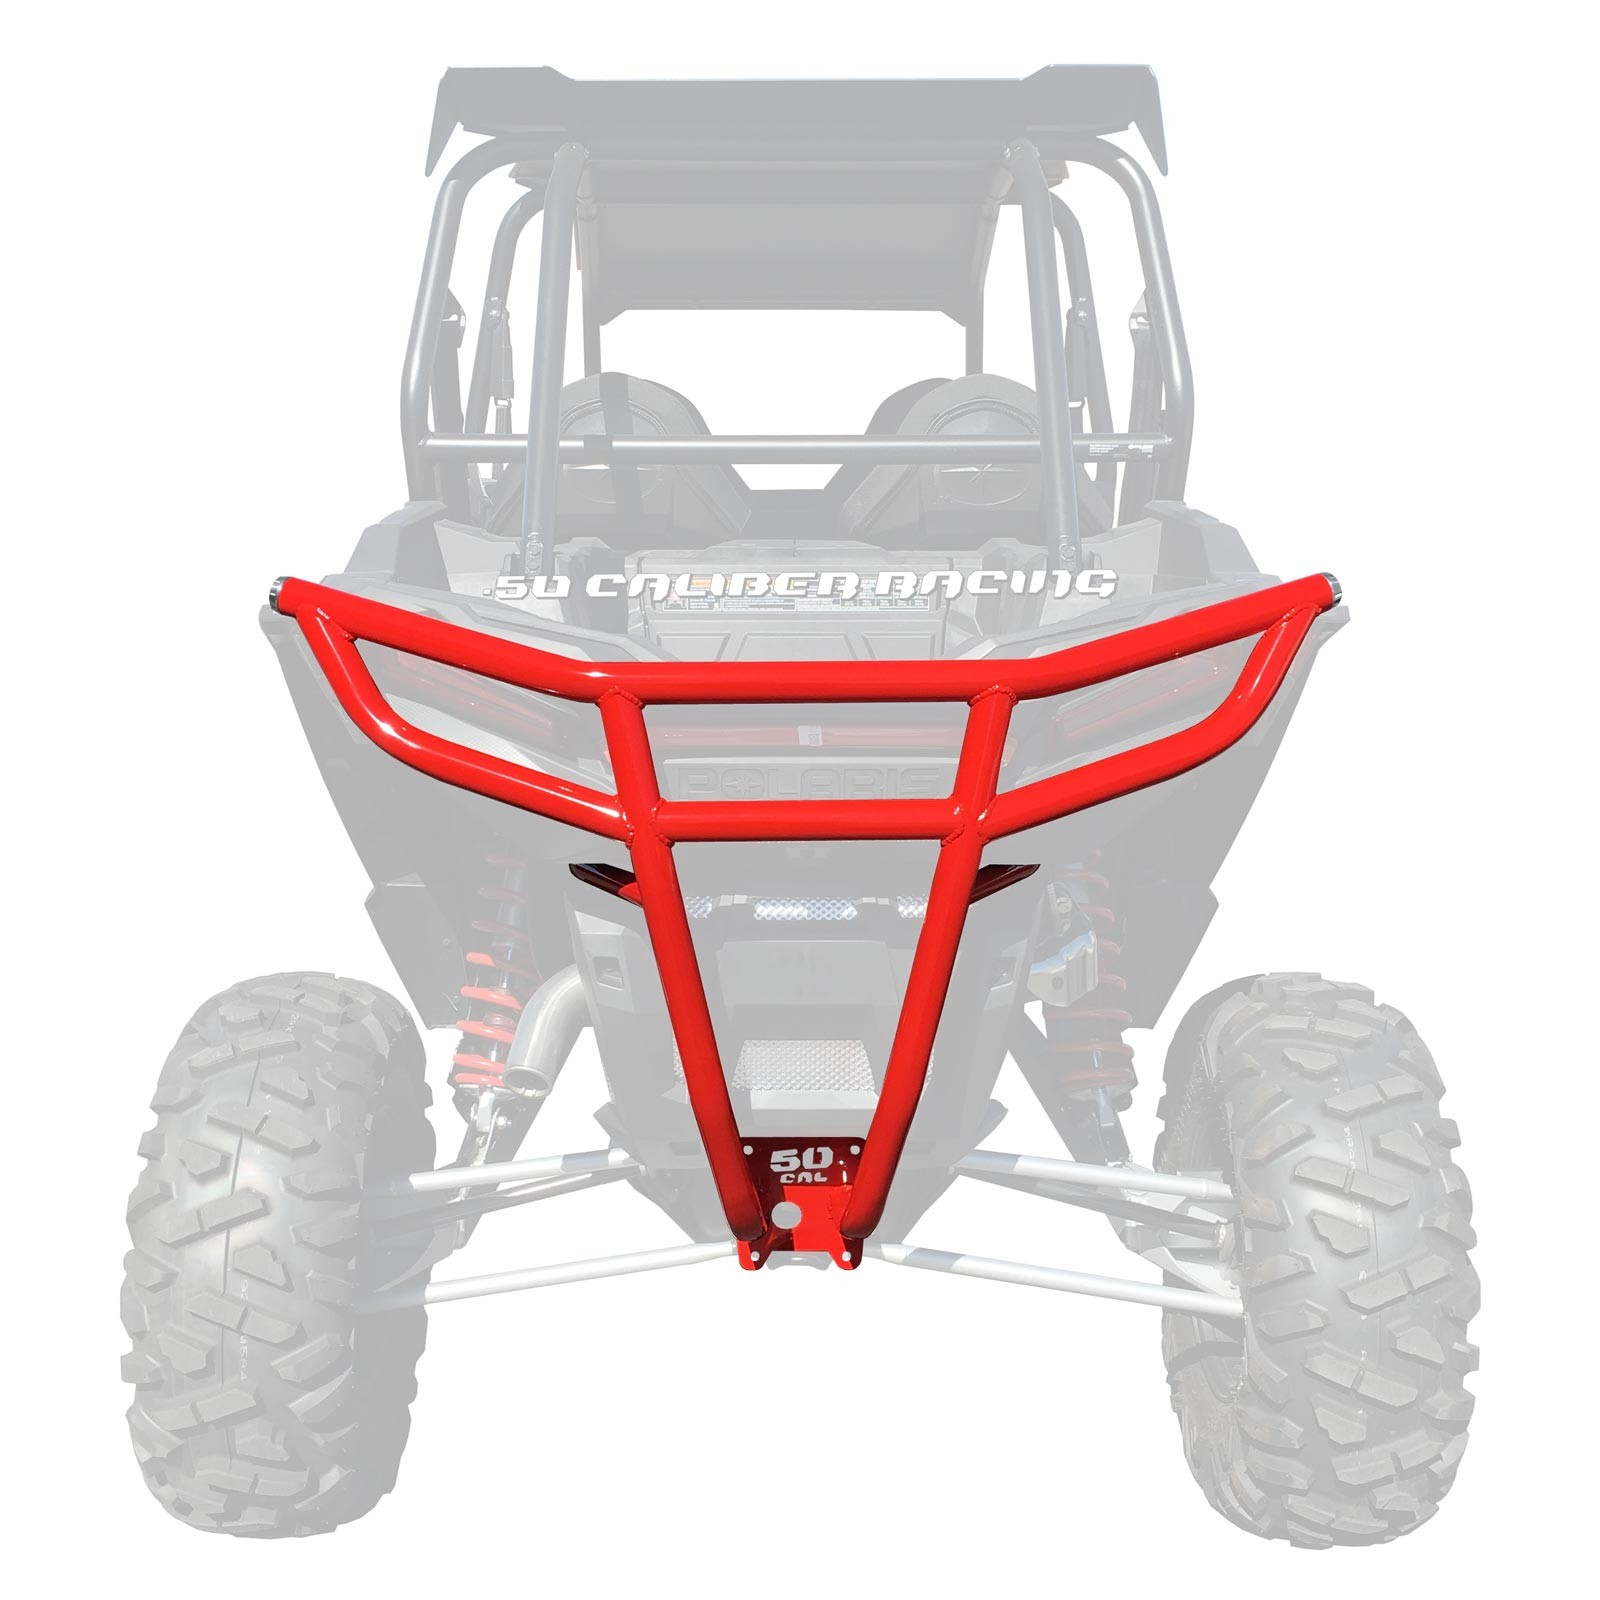 Terrific Polaris Rzr Rear Bumper For Xp4 1000 Xp1000 Turbo 2 4 Seat Theyellowbook Wood Chair Design Ideas Theyellowbookinfo